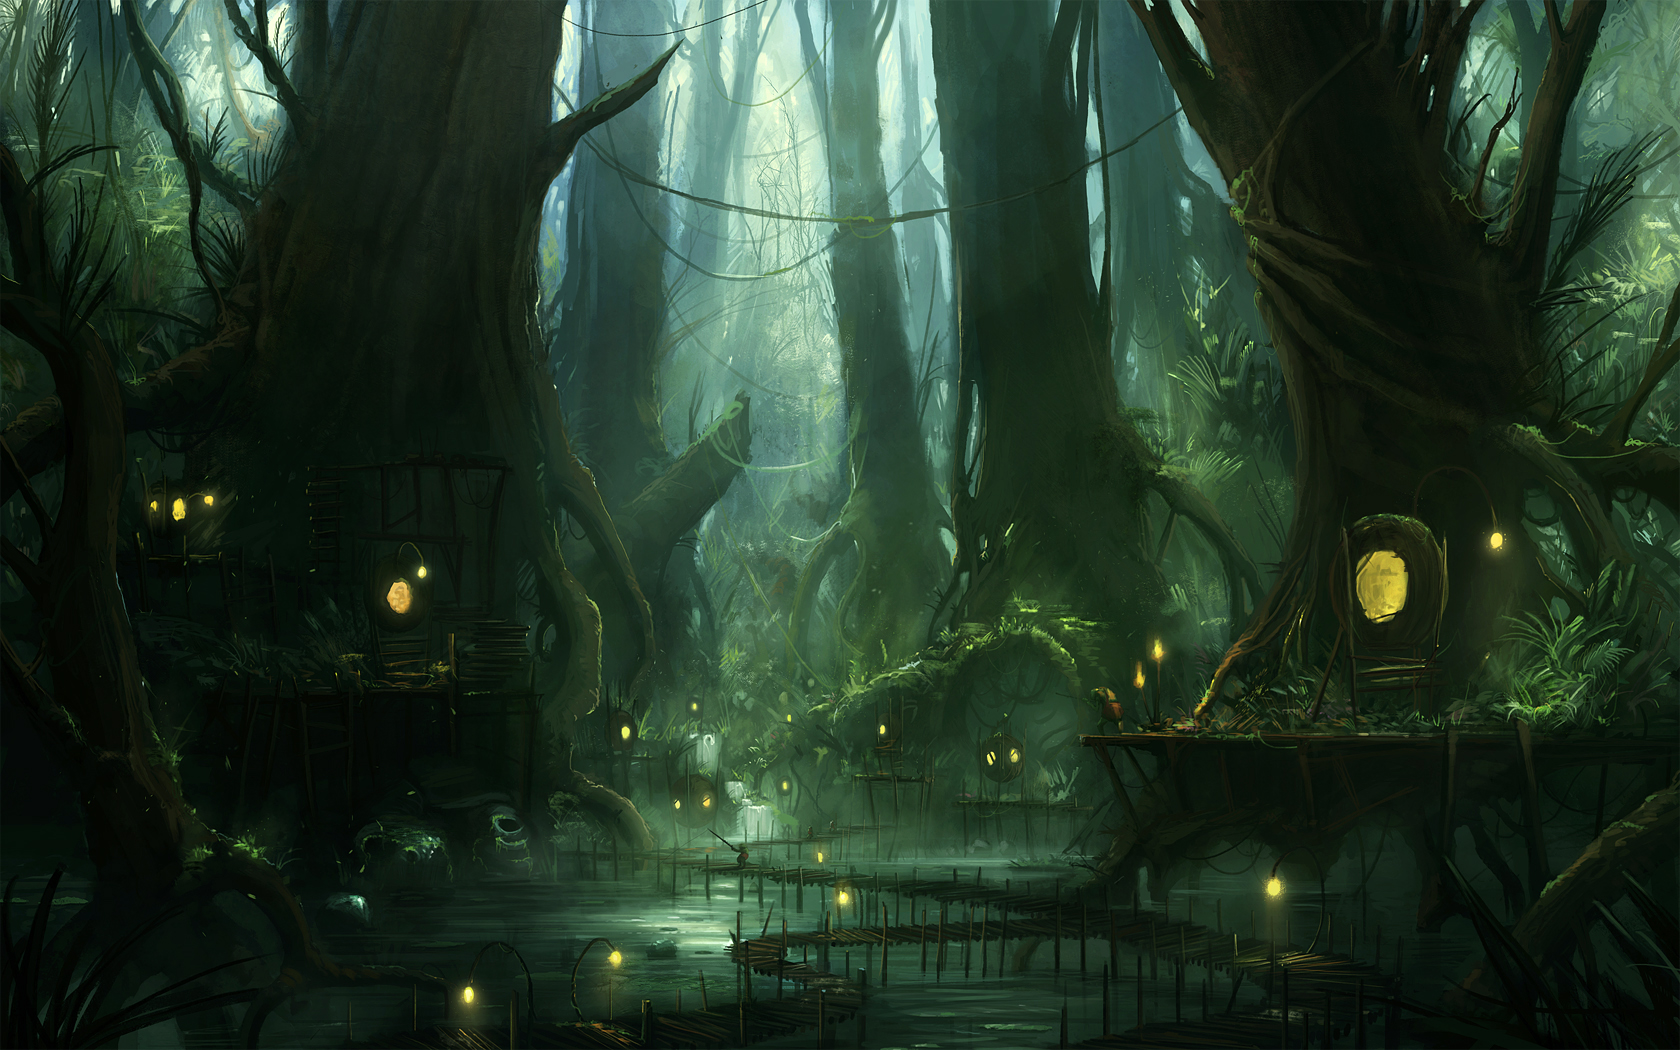 Swamp by JJcanvas Swamp by JJcanvas